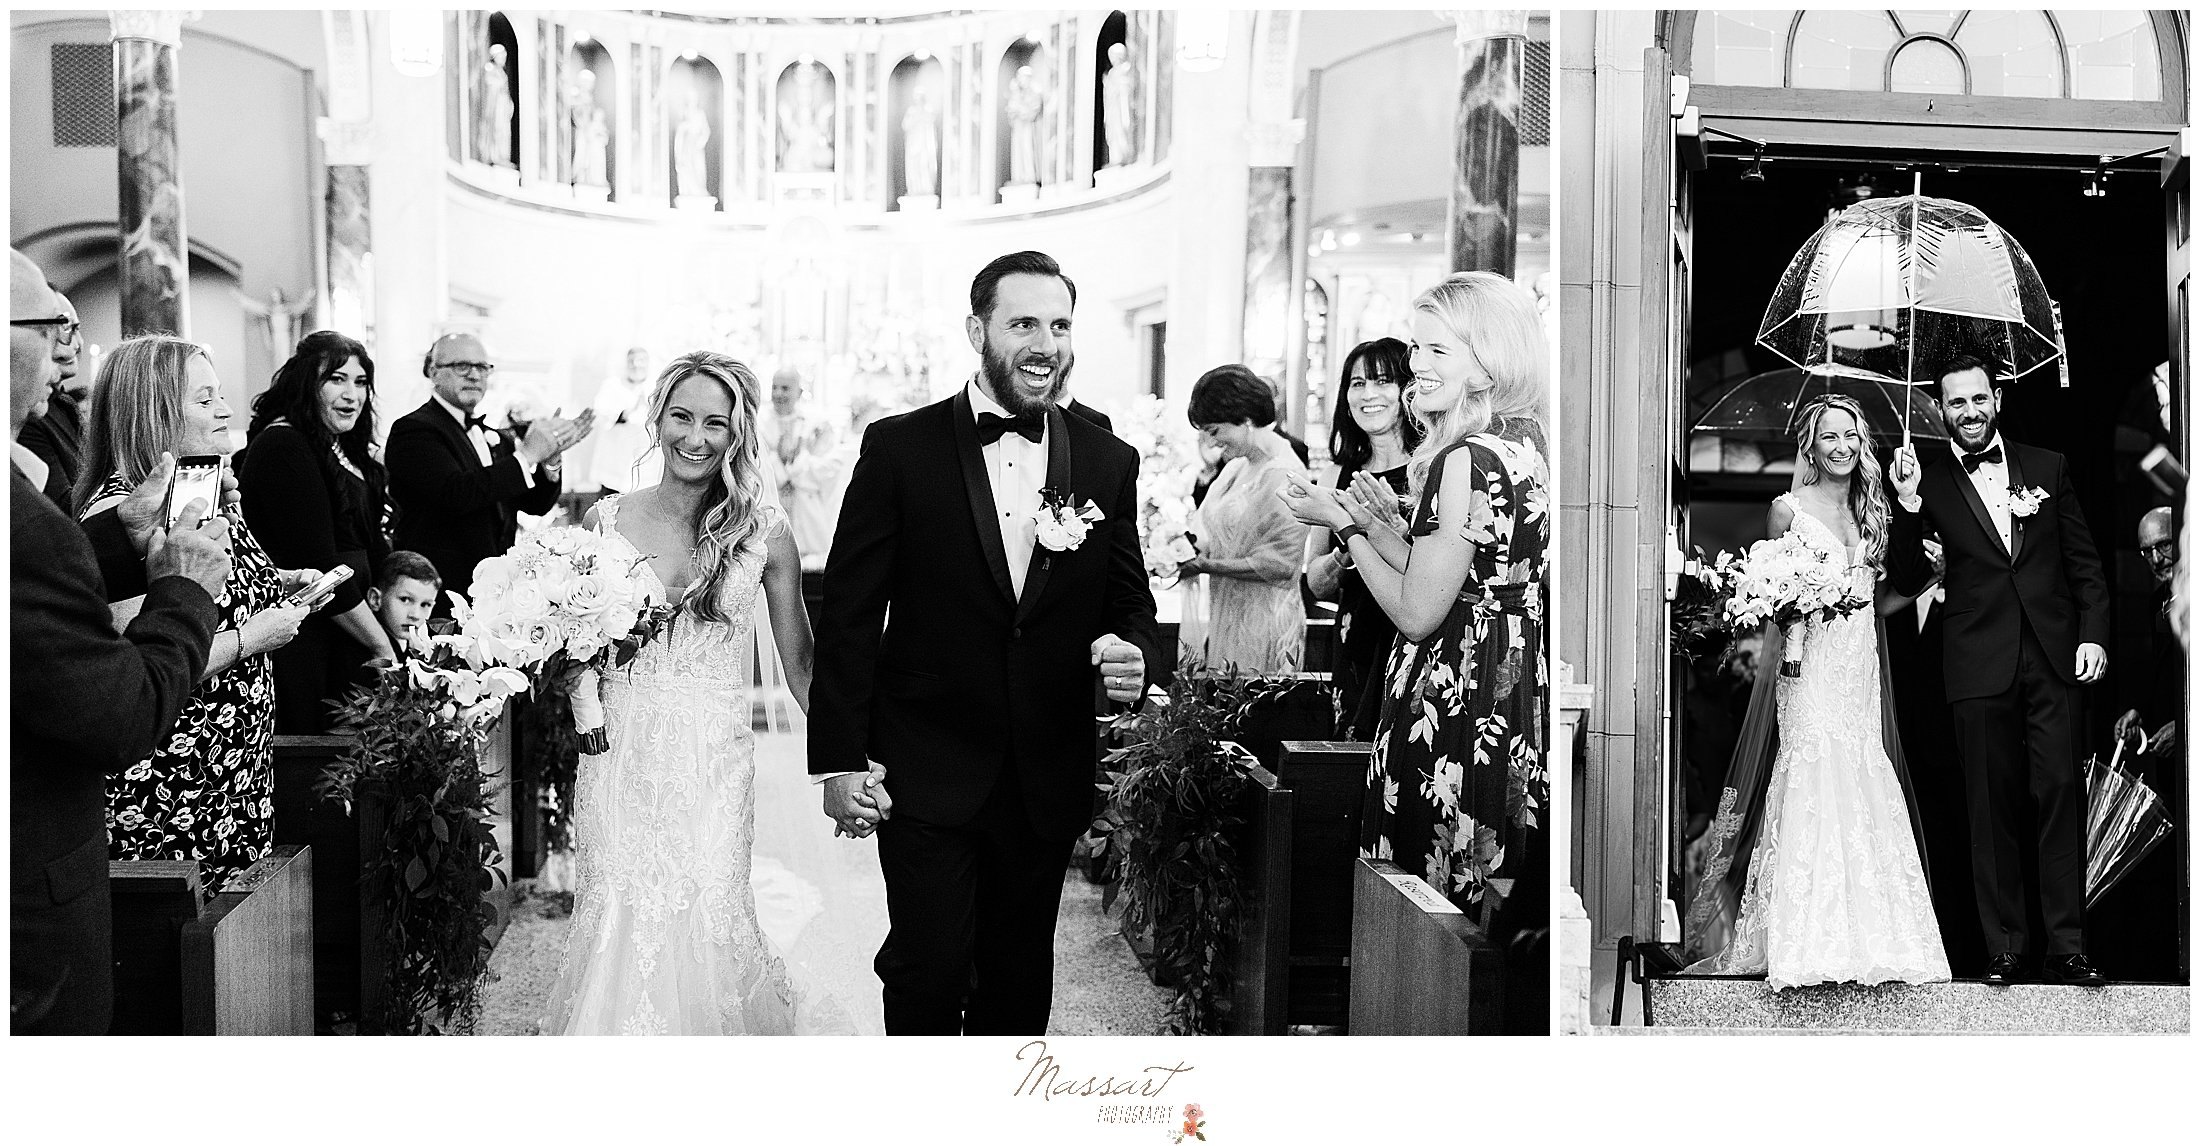 newlyweds leave traditional church wedding in St. Mary's Catholic Church